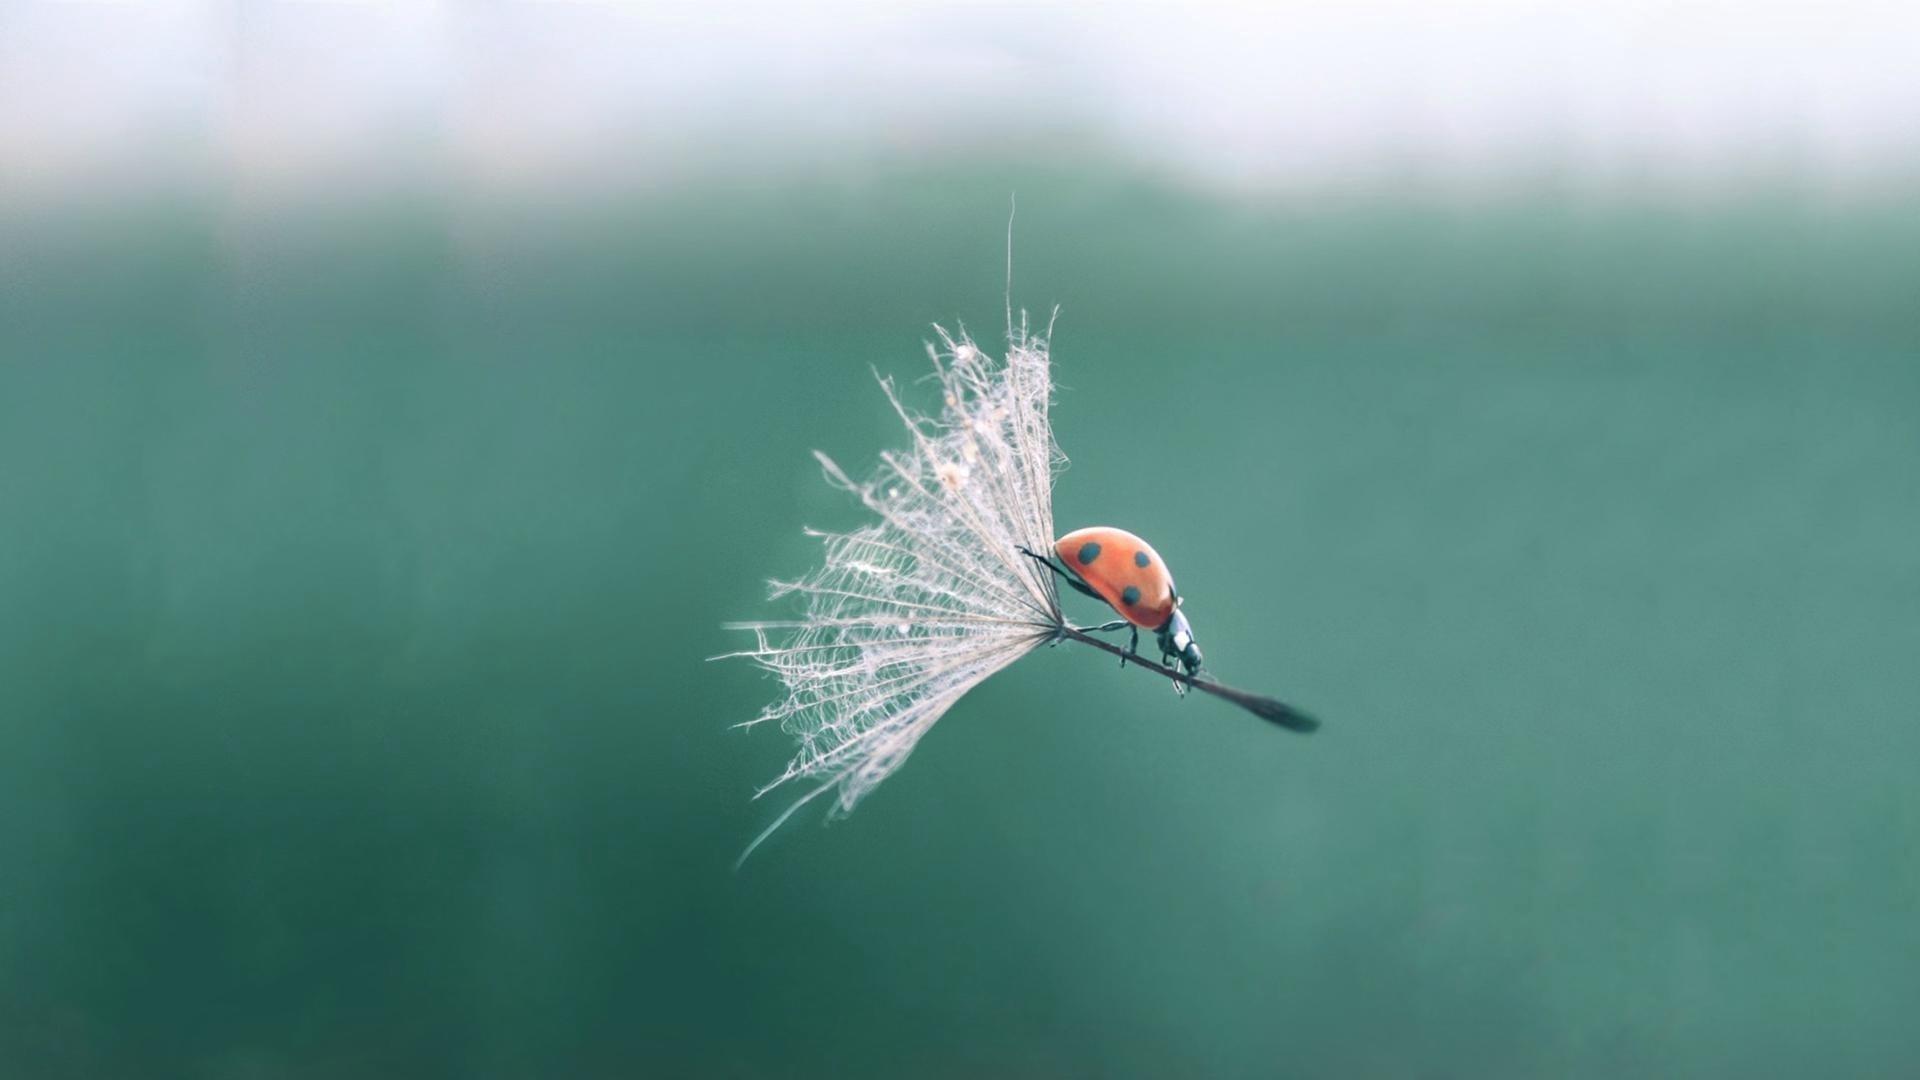 ladybug,blowball,flight,dandelion,mobile,ladybird,flying,with,fast,air,waving,blossom,dandelions,flowers,fluttering,heyday